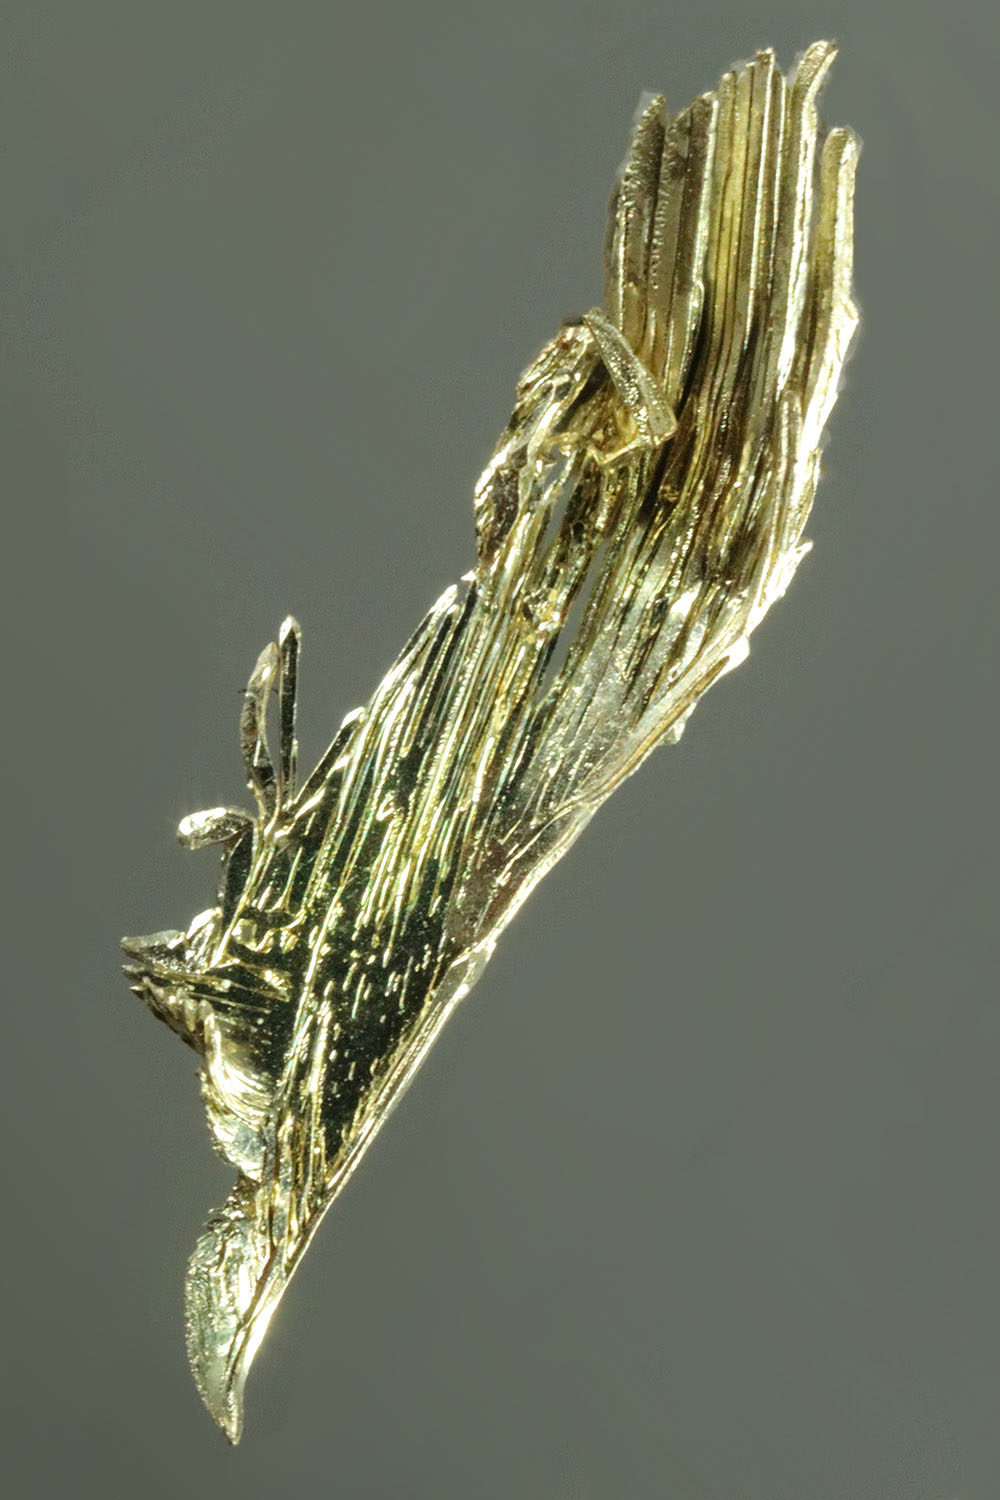 A Feather - Natural Gold Specimen from Fire Creek Mine